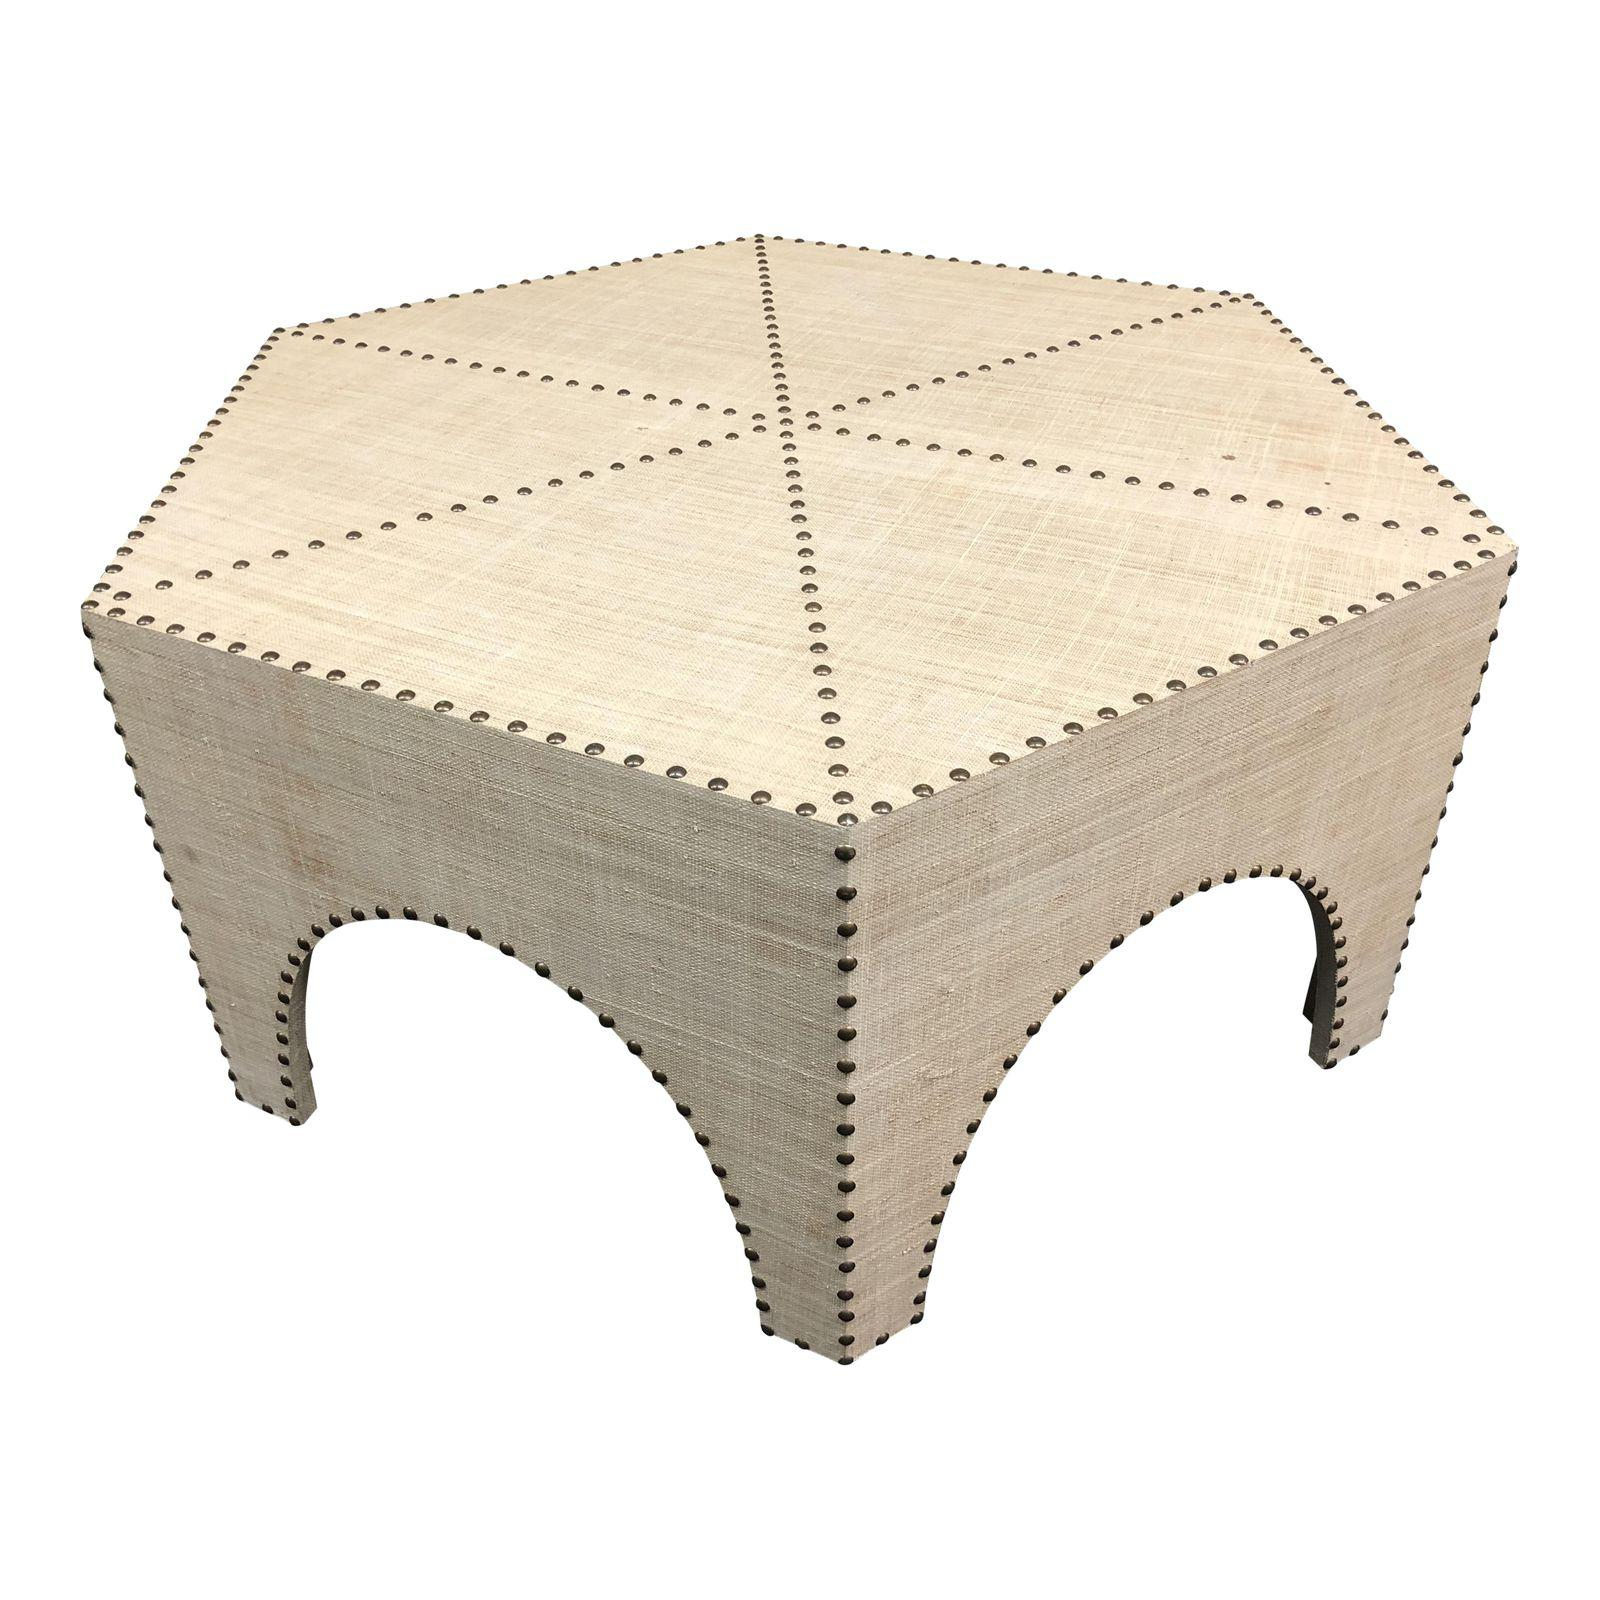 Popular Casablanca Coffee Tables Regarding New Palecek Casablanca Raffia Coffee Table – Design Plus Gallery (View 13 of 20)